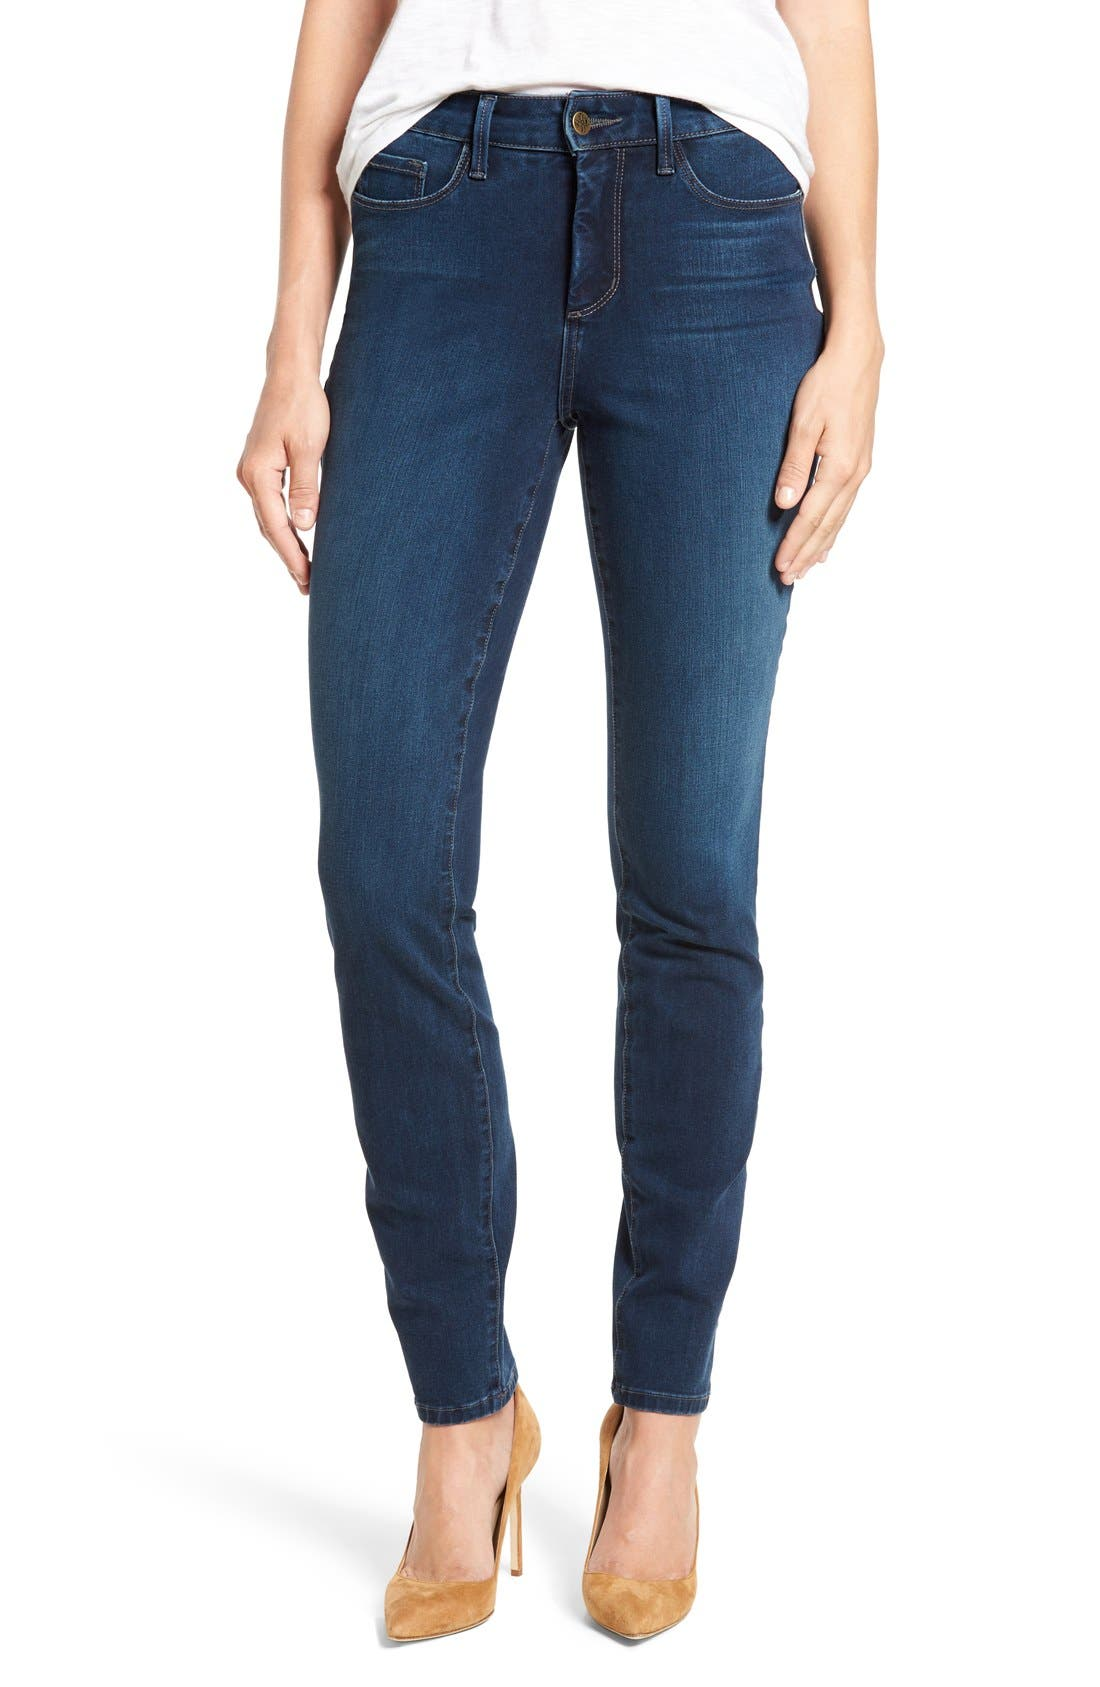 Main Image - NYDJ Alina Colored Stretch Skinny Jeans (Regular & Petite)